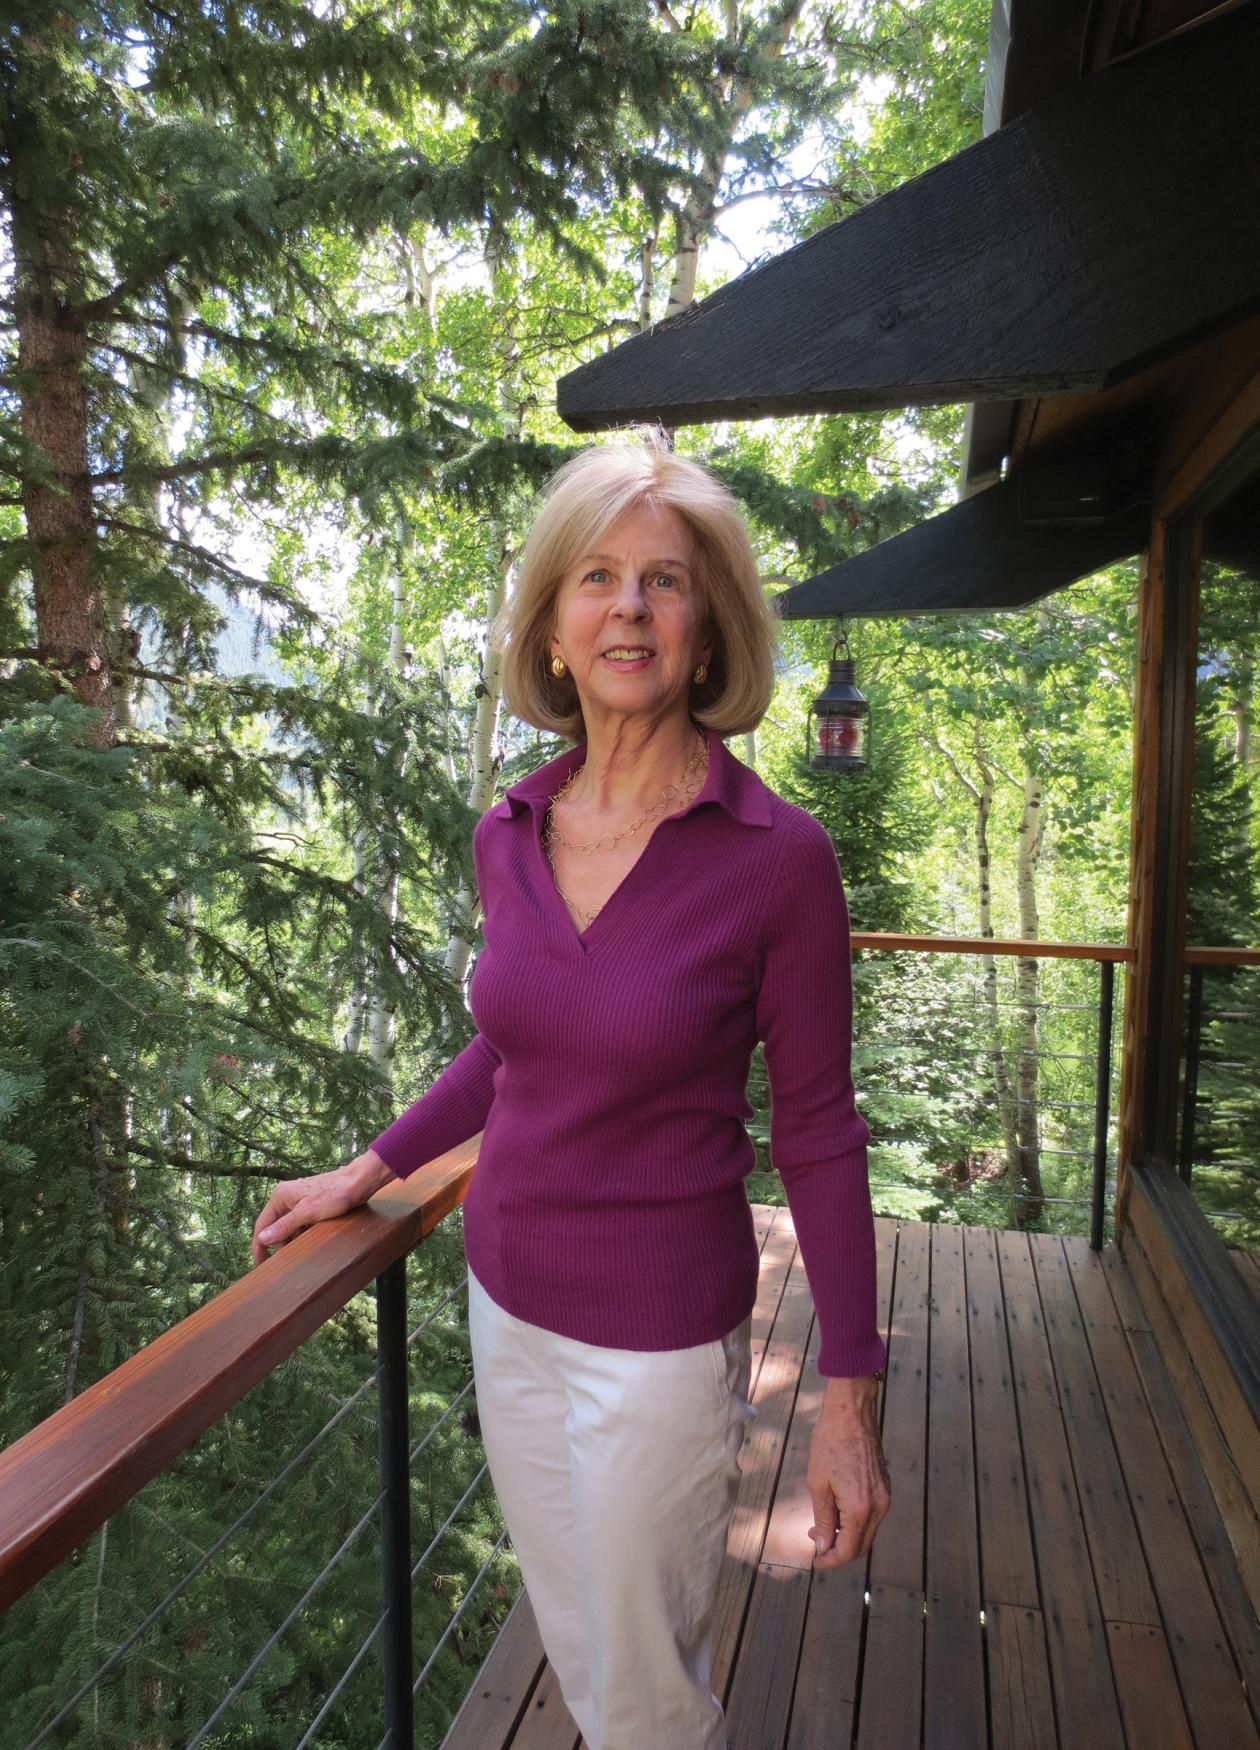 Elaine Pagels on a balcony, surrounded by forest